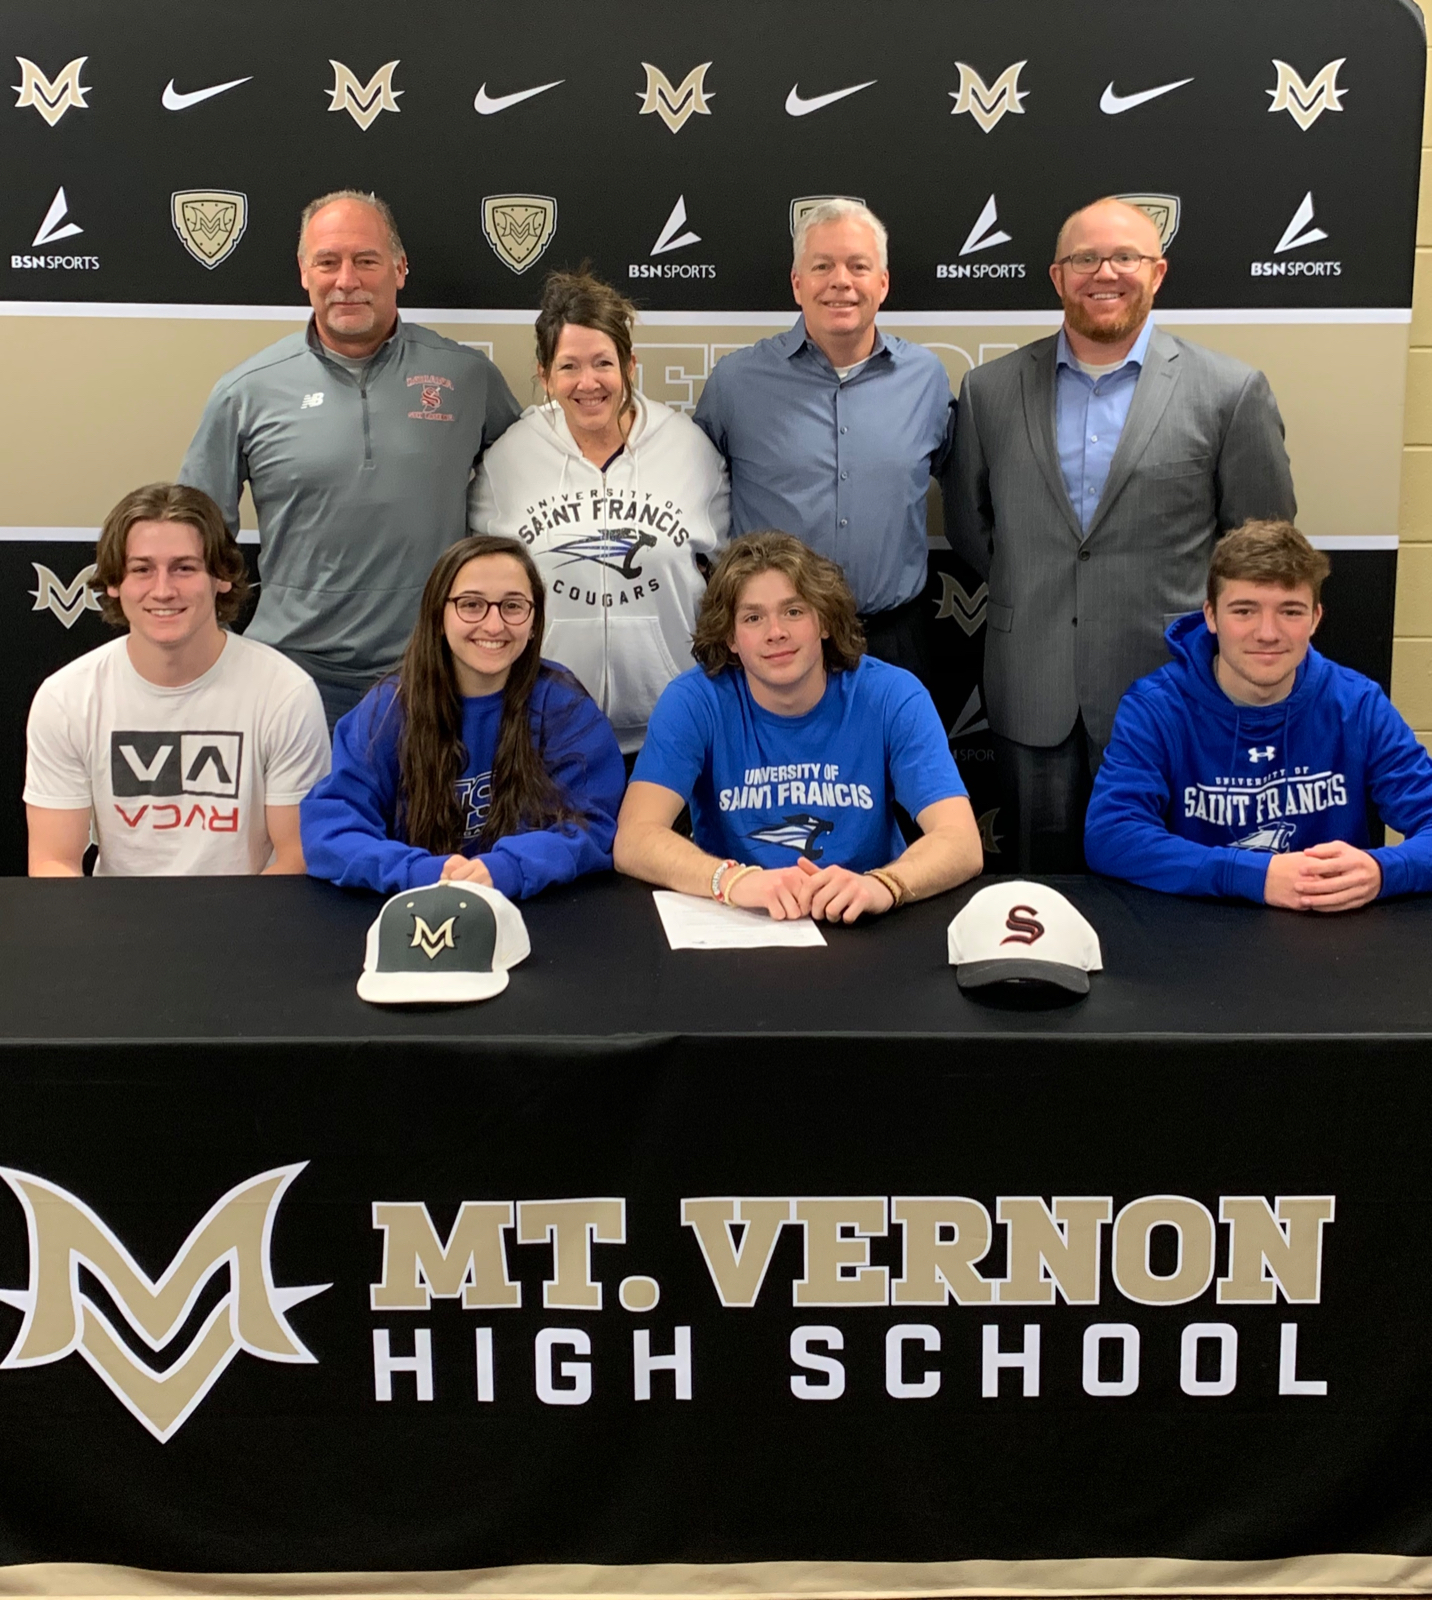 Sam McCarty Signs With Saint Francis